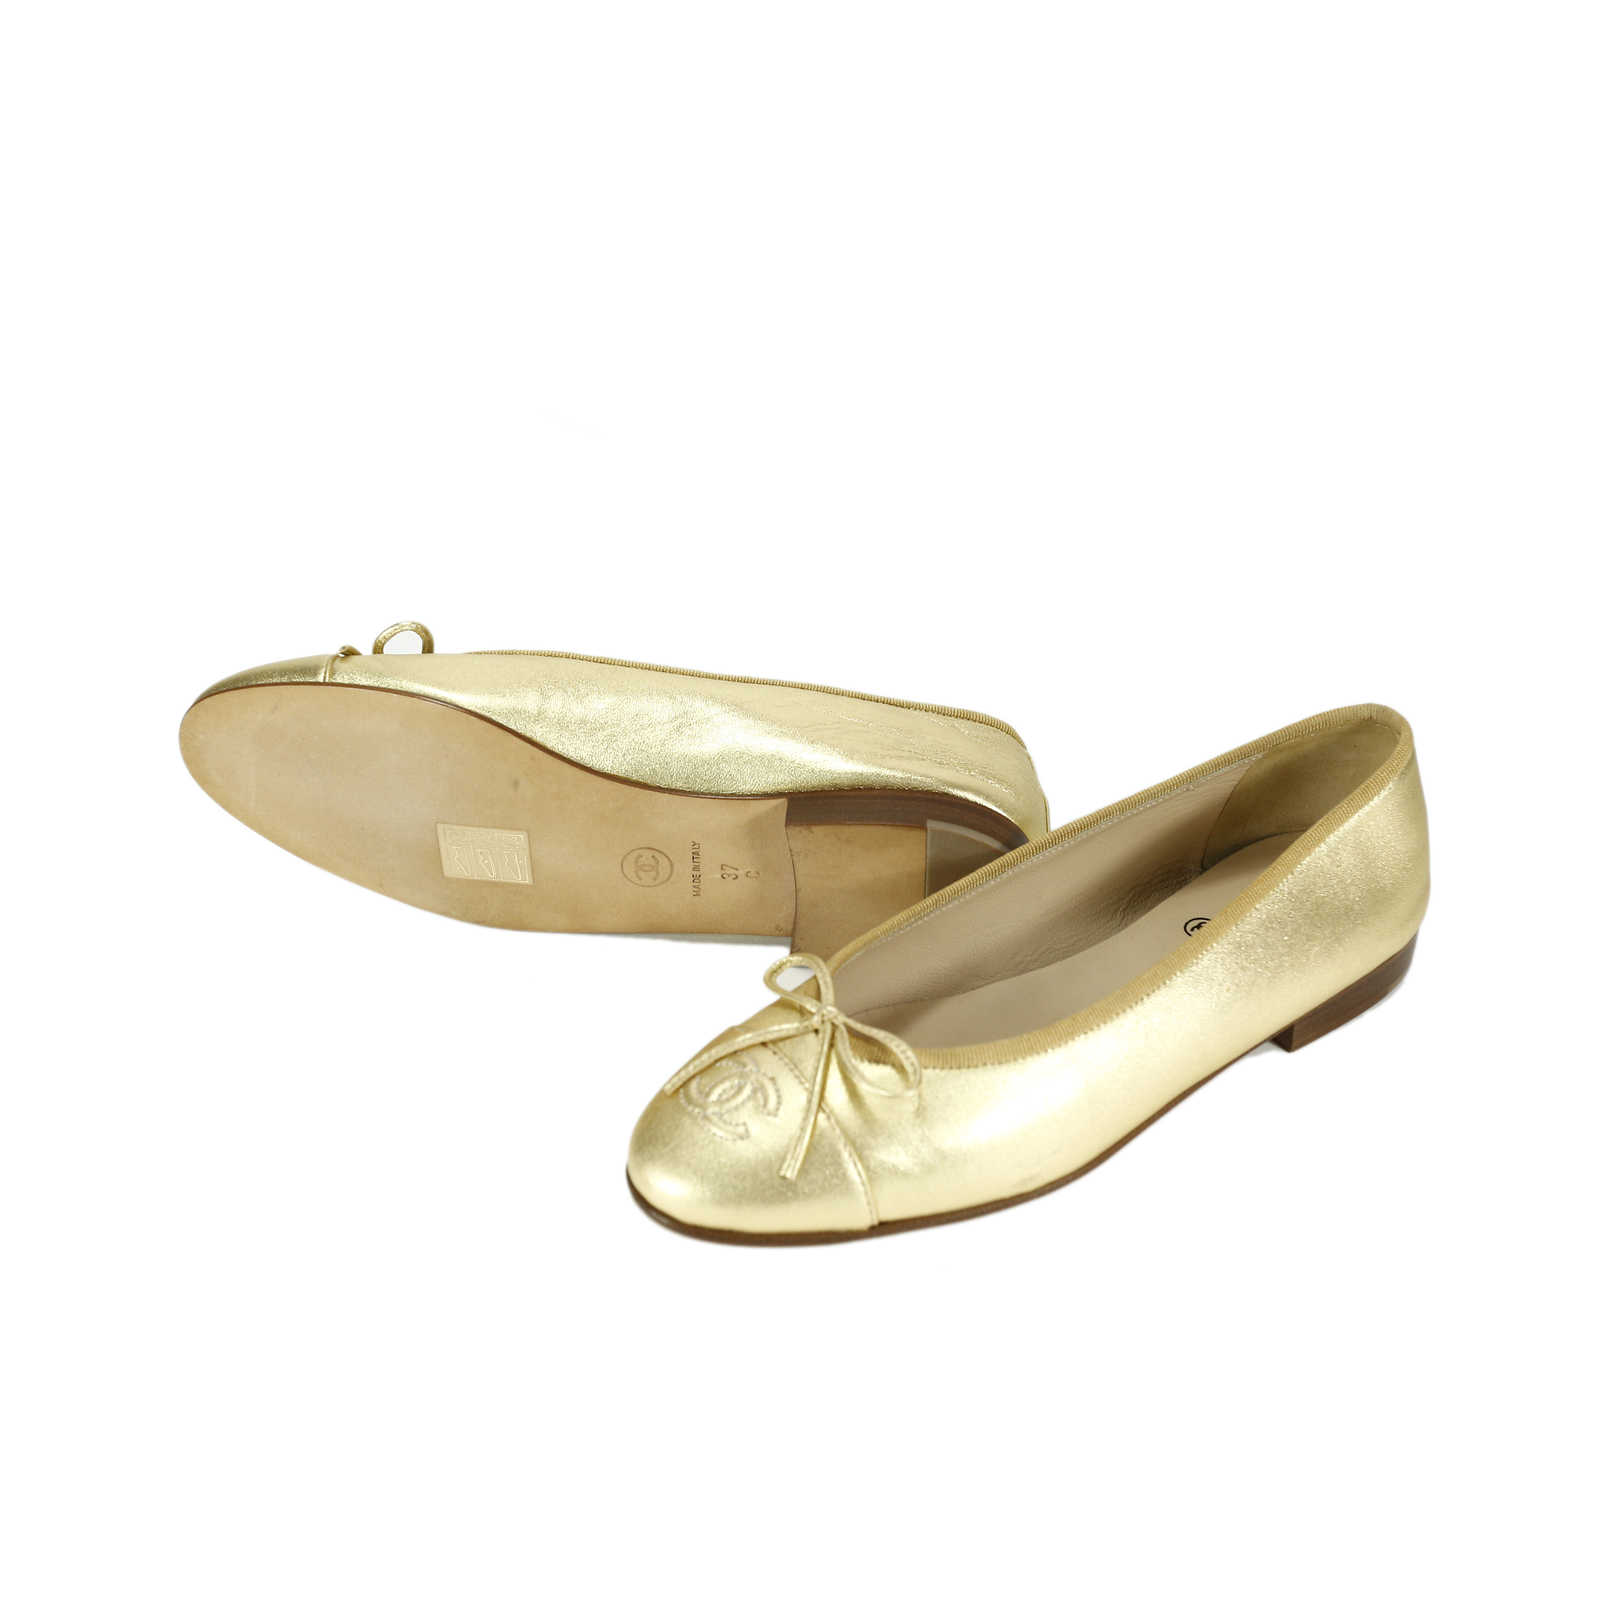 ... Authentic Pre Owned Chanel Ballerina Flats (PSS-145-00002) - Thumbnail  1 ... c0dc2e7c37